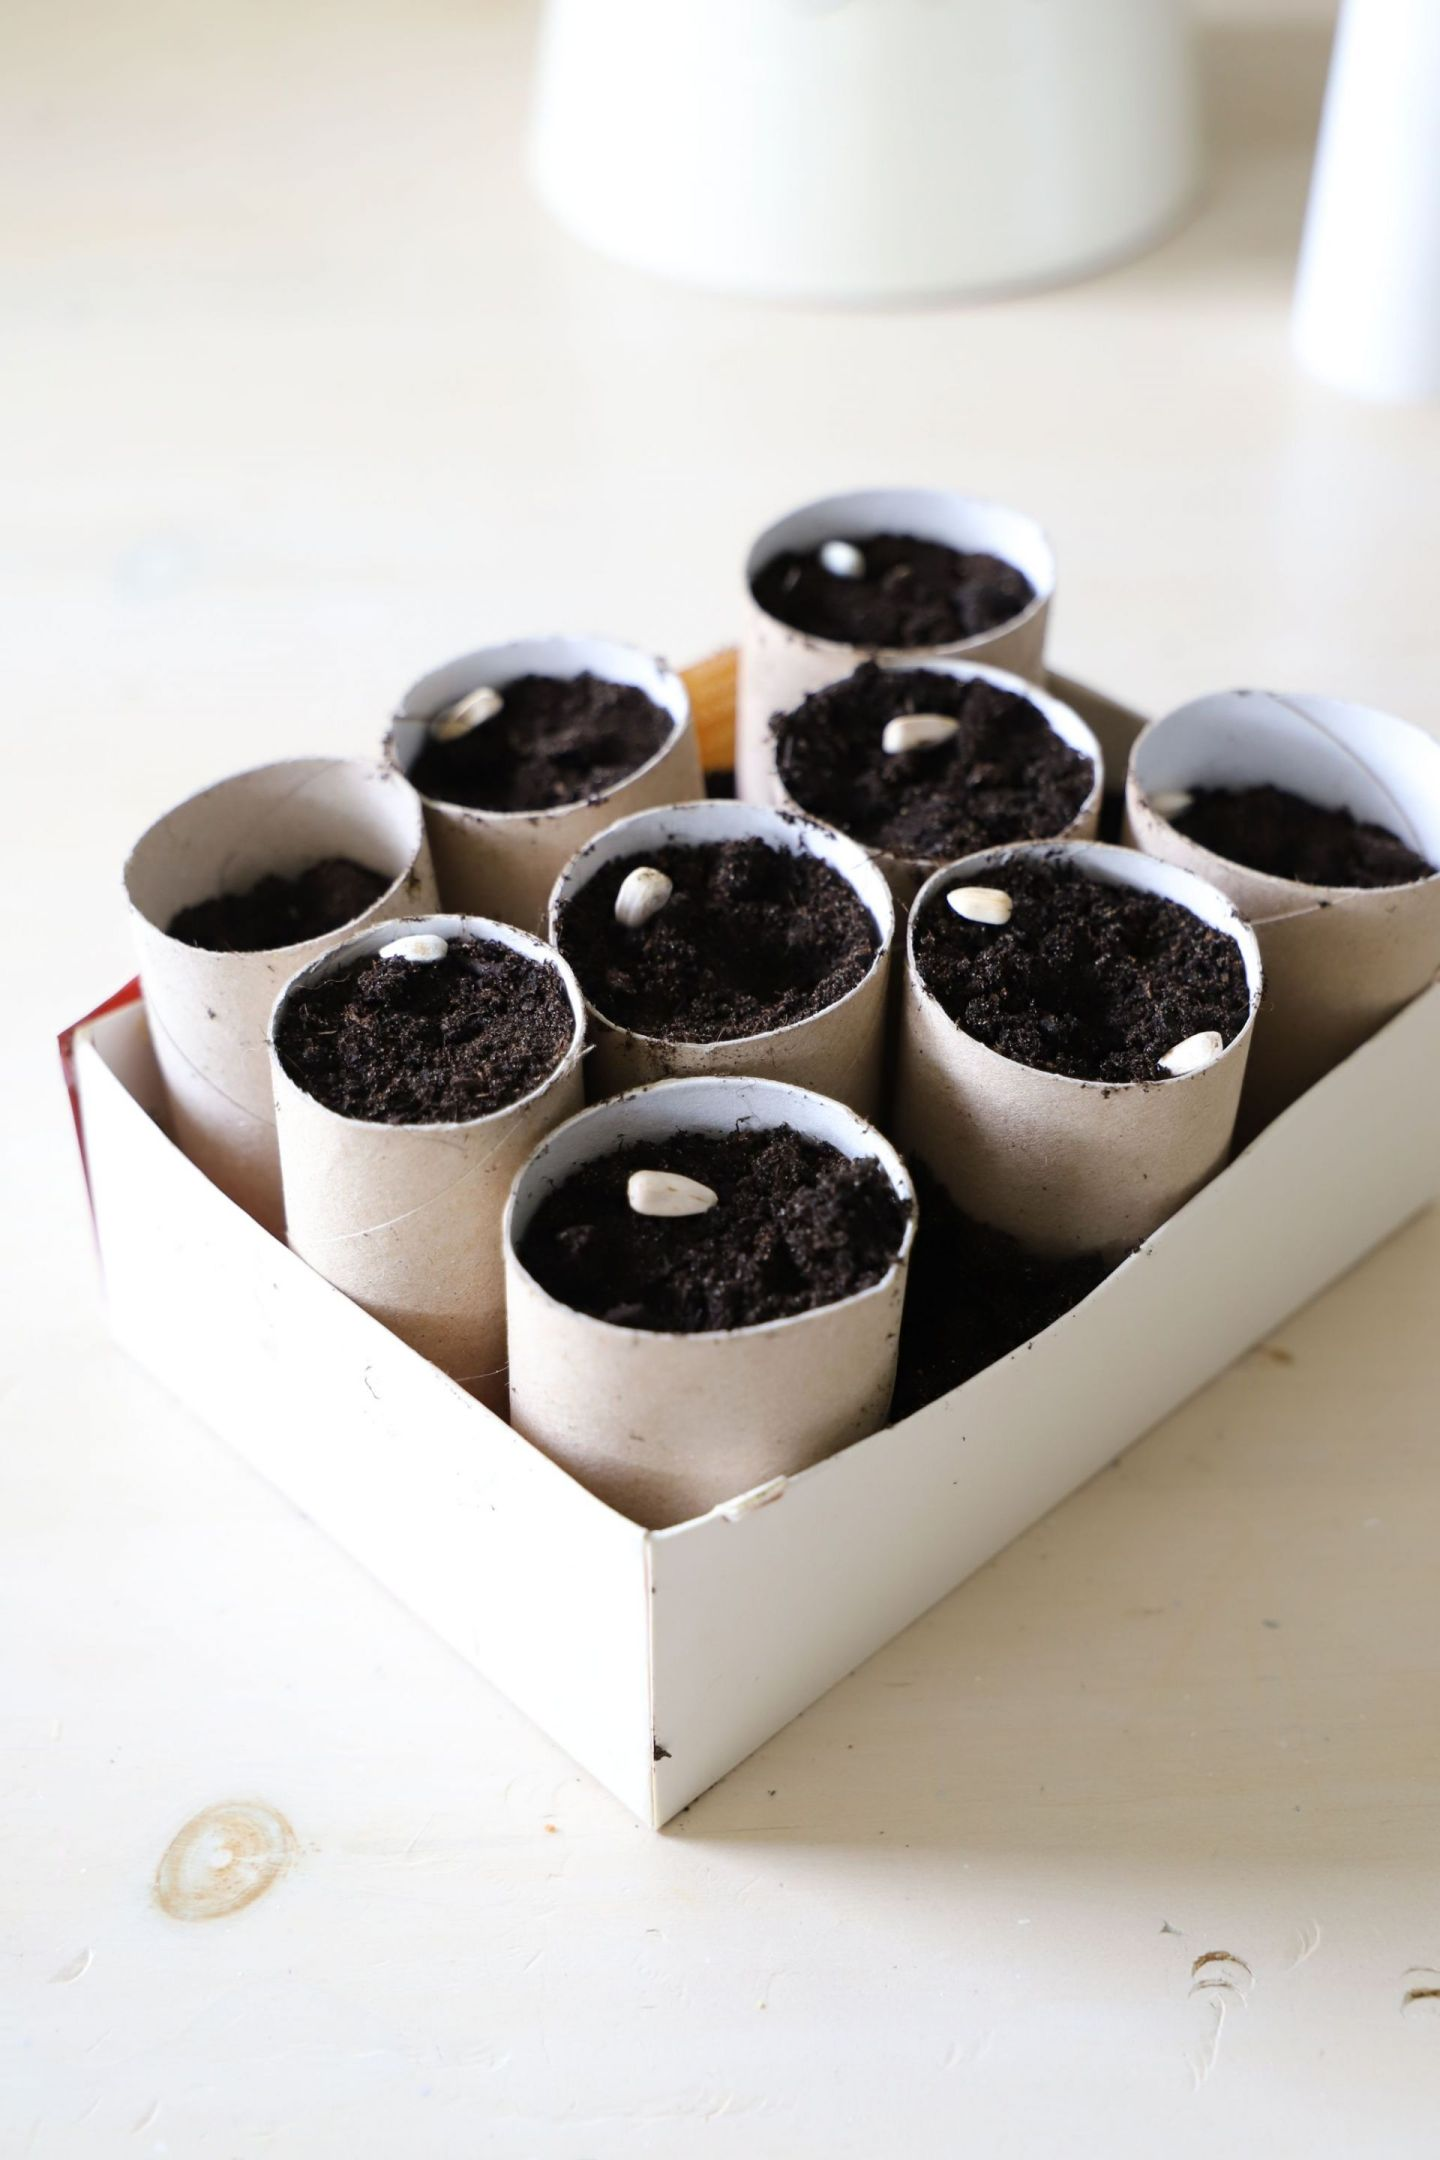 how to use toilet rolls for seeds